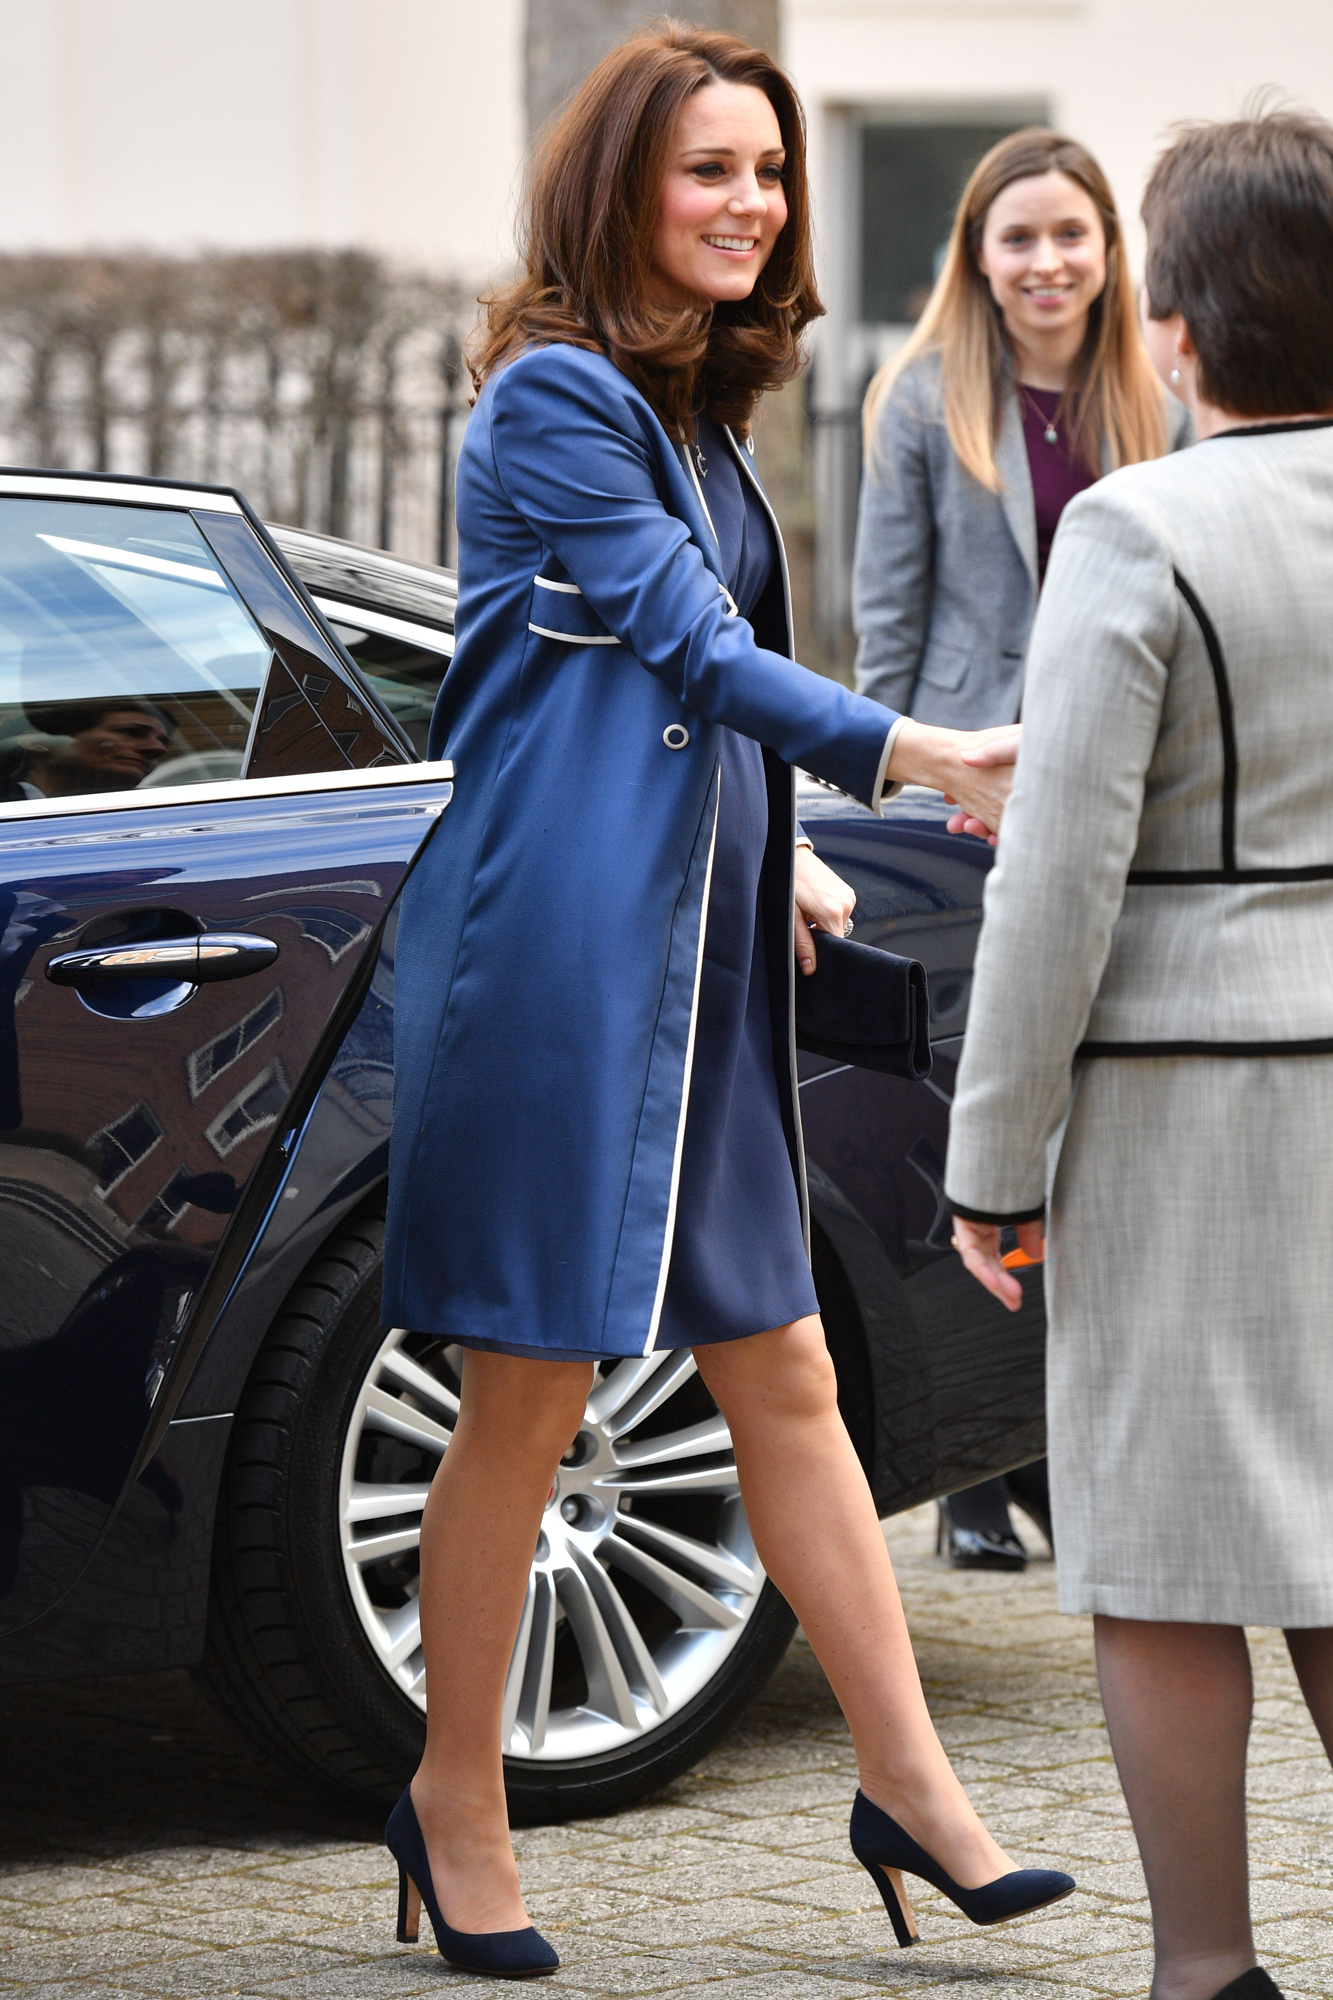 Catherine Duchess of Cambridge visits the Royal College of Obstetricians and Gynaecologists, London, UK - 27 Feb 2018